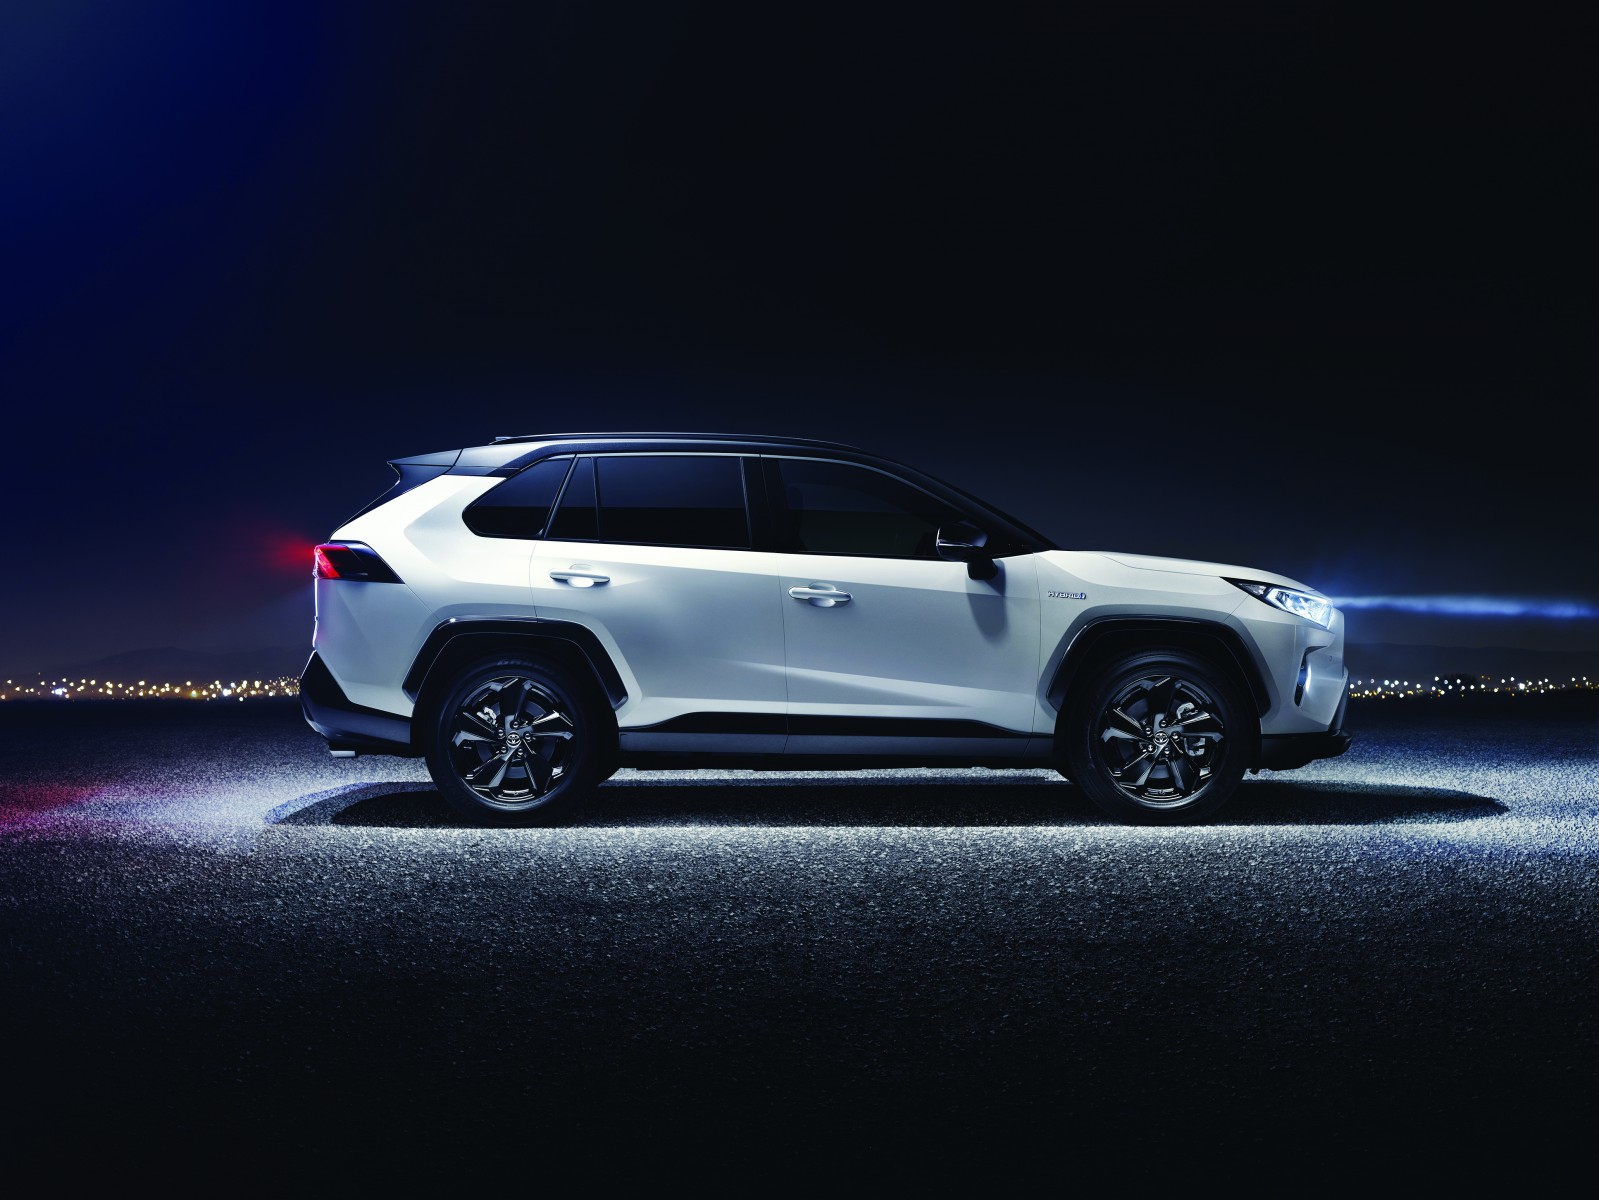 Toyota RAV4 Owners Manual: If the enginewill not start